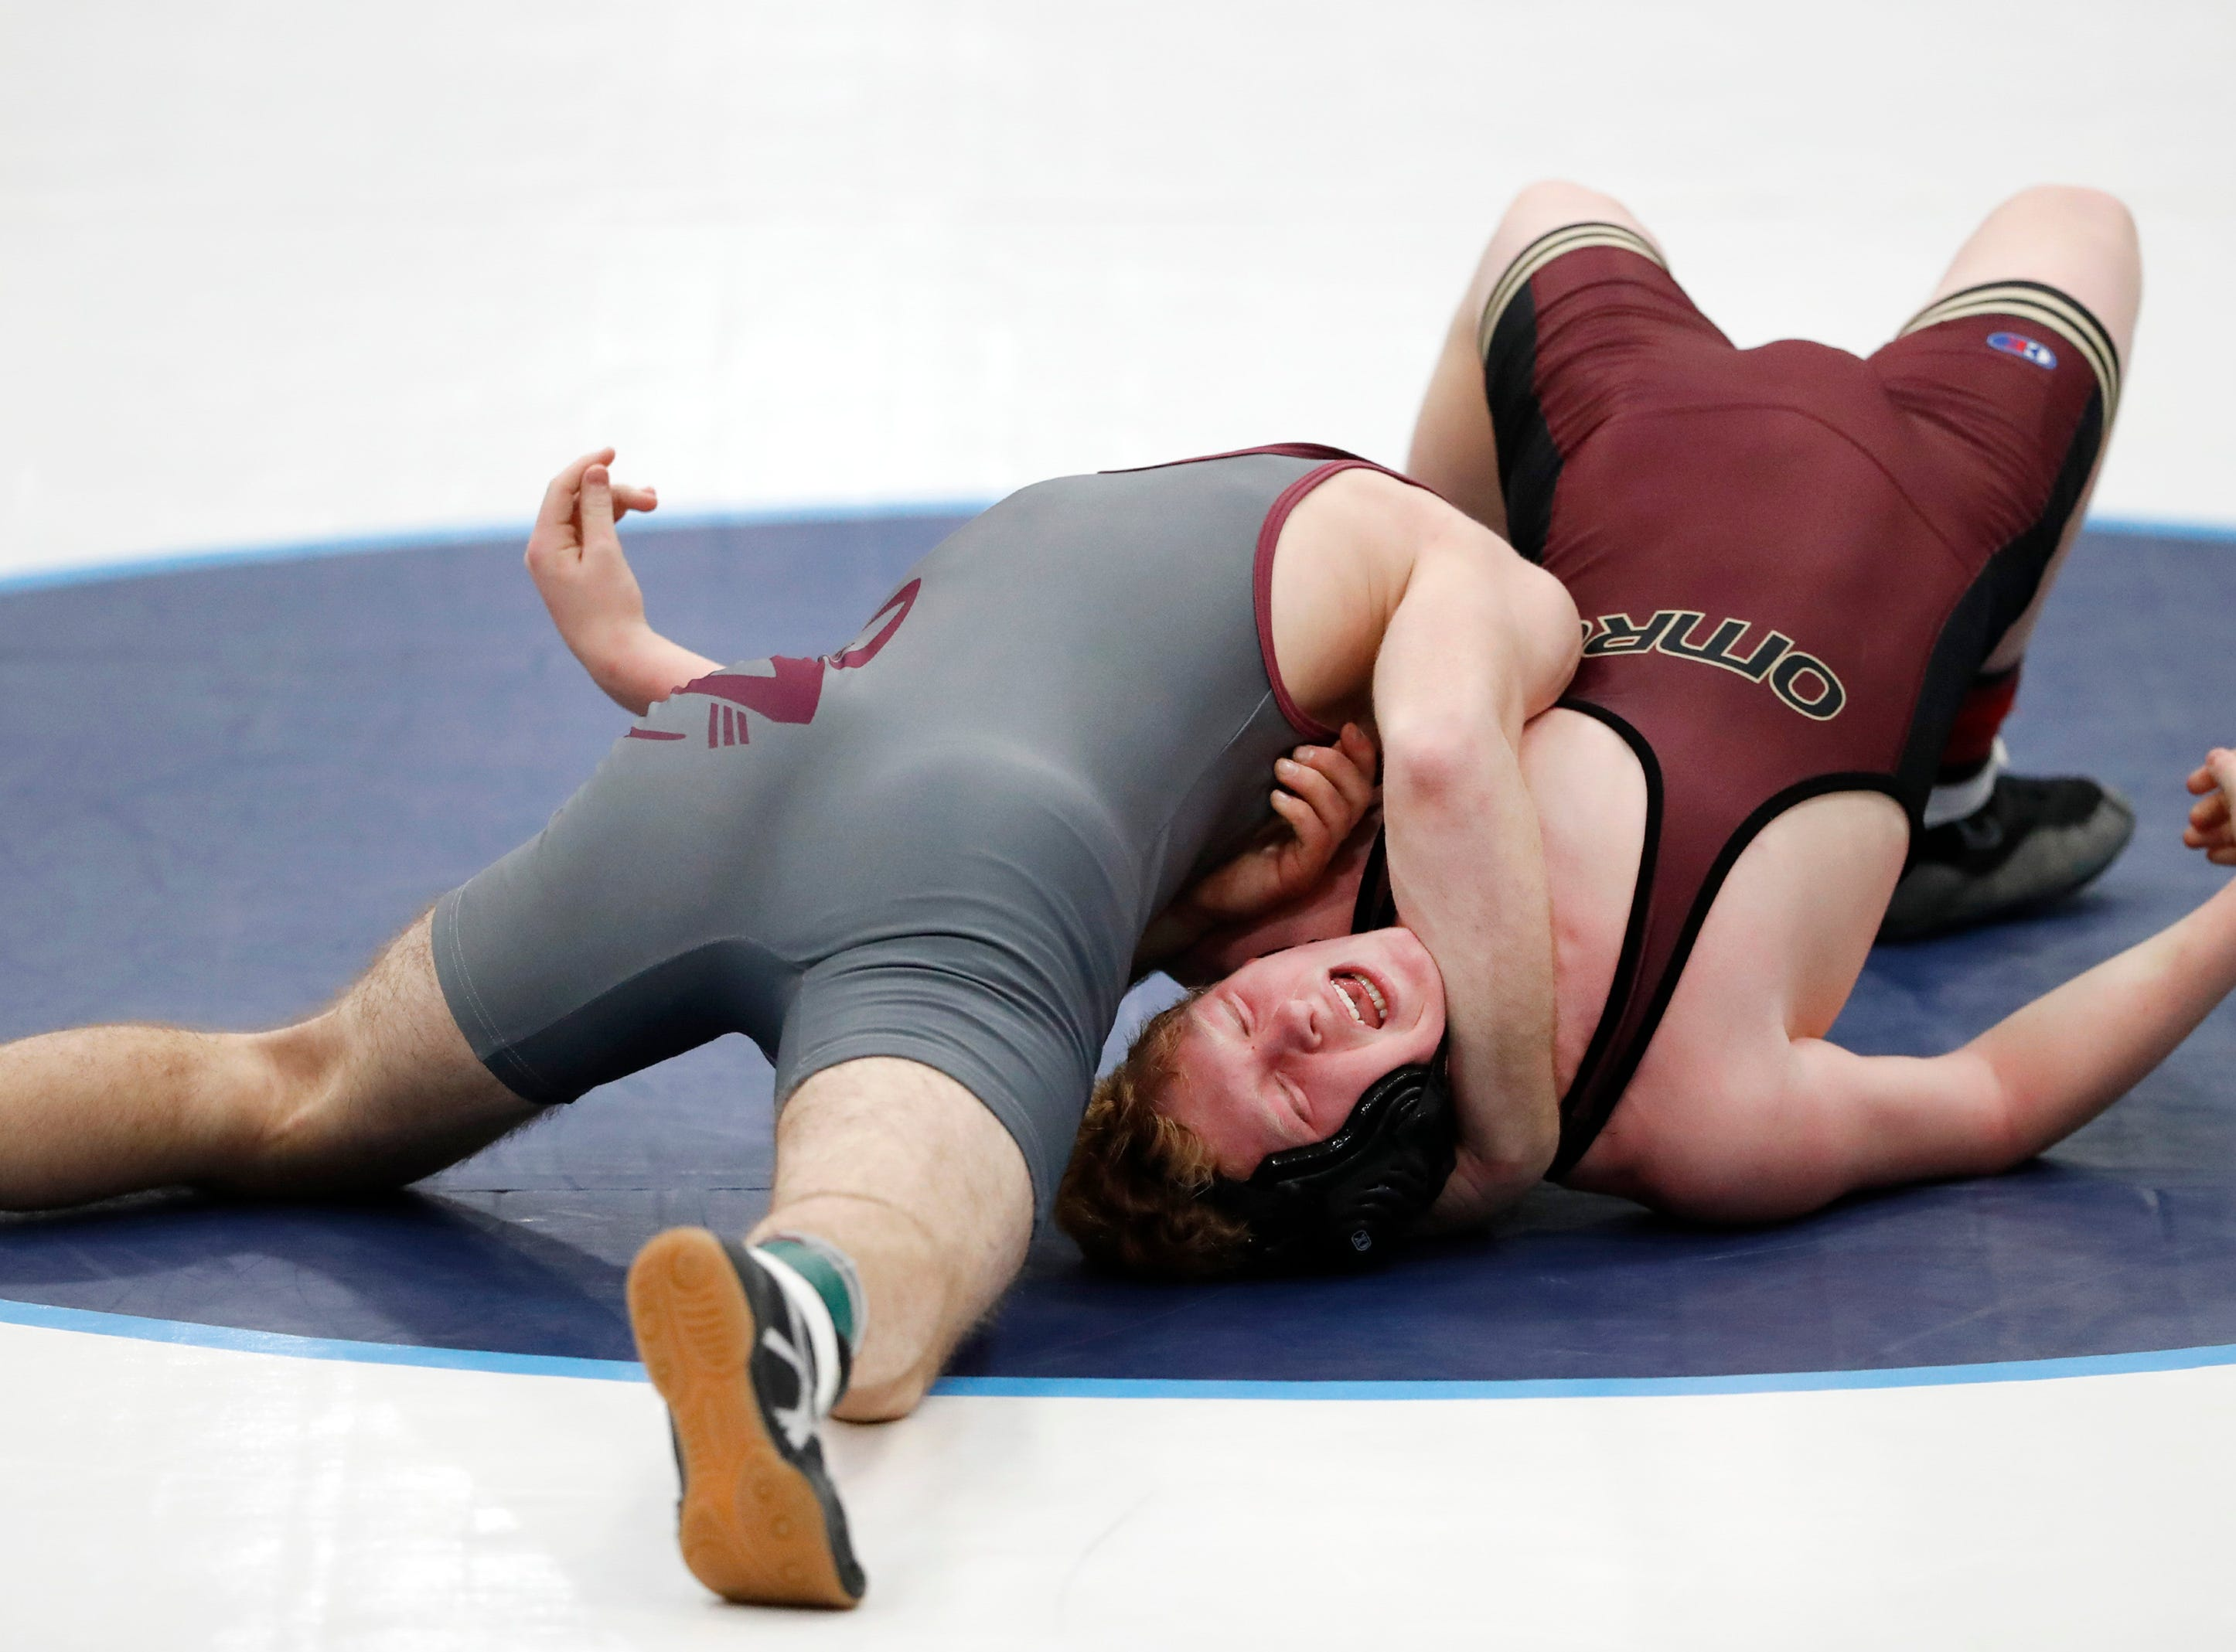 Fox Valley Lutheran's Arthur Rice tries to pin Omro's Ben Stone during their 160-pound match during the D2 wrestling regional Saturday Feb. 9, 2019, in Little Chute, Wis.